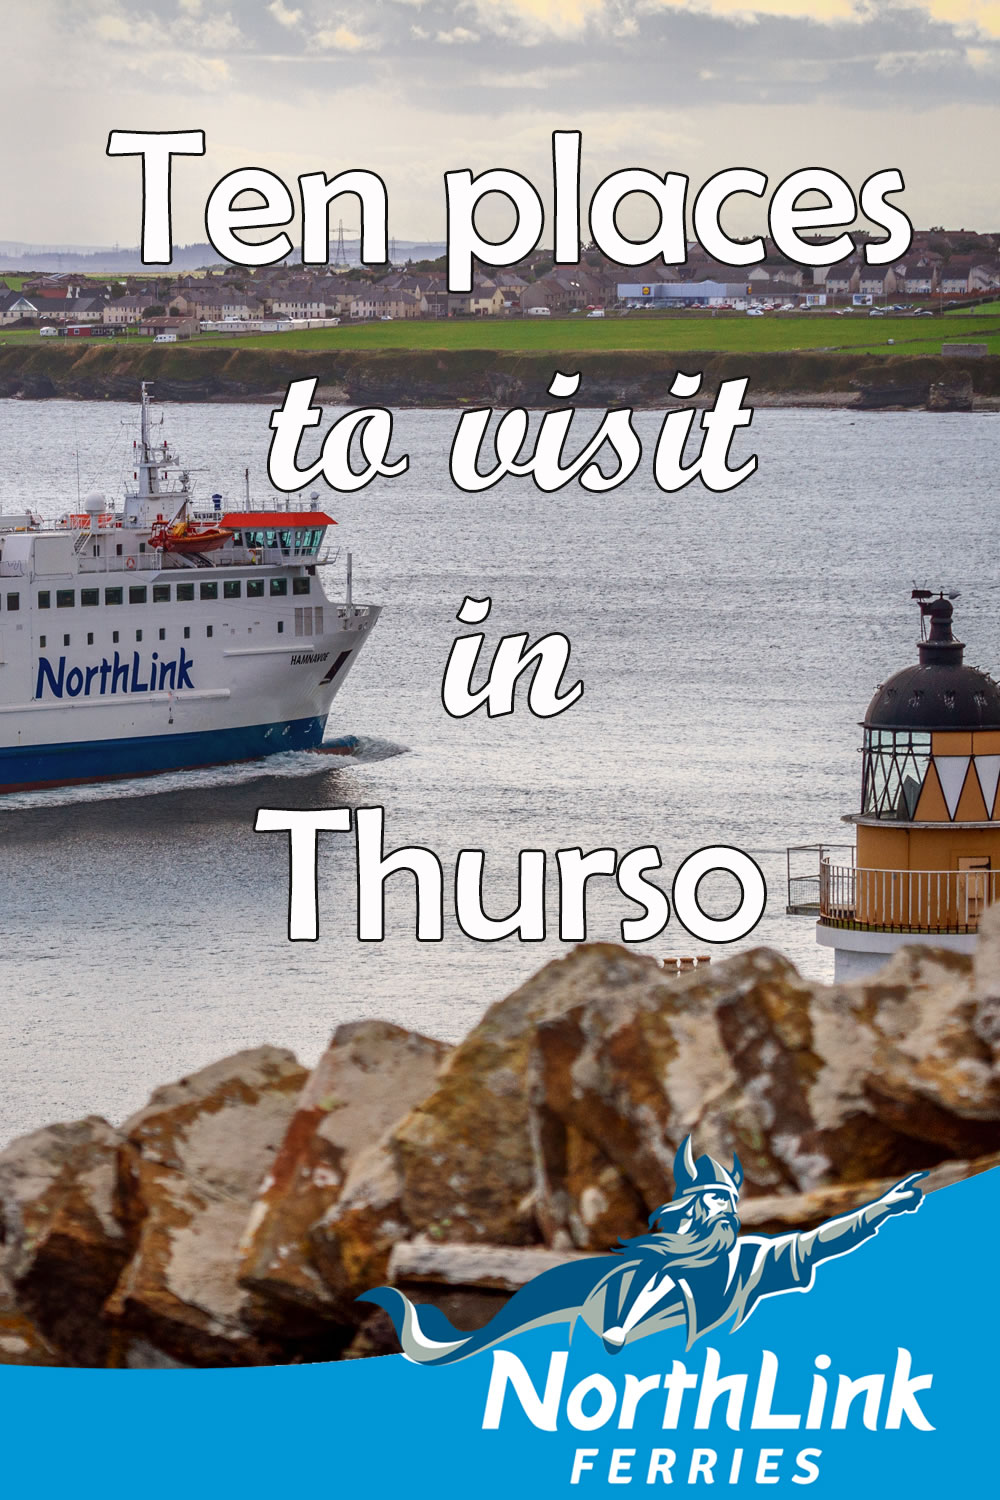 Ten places to visit in Thurso